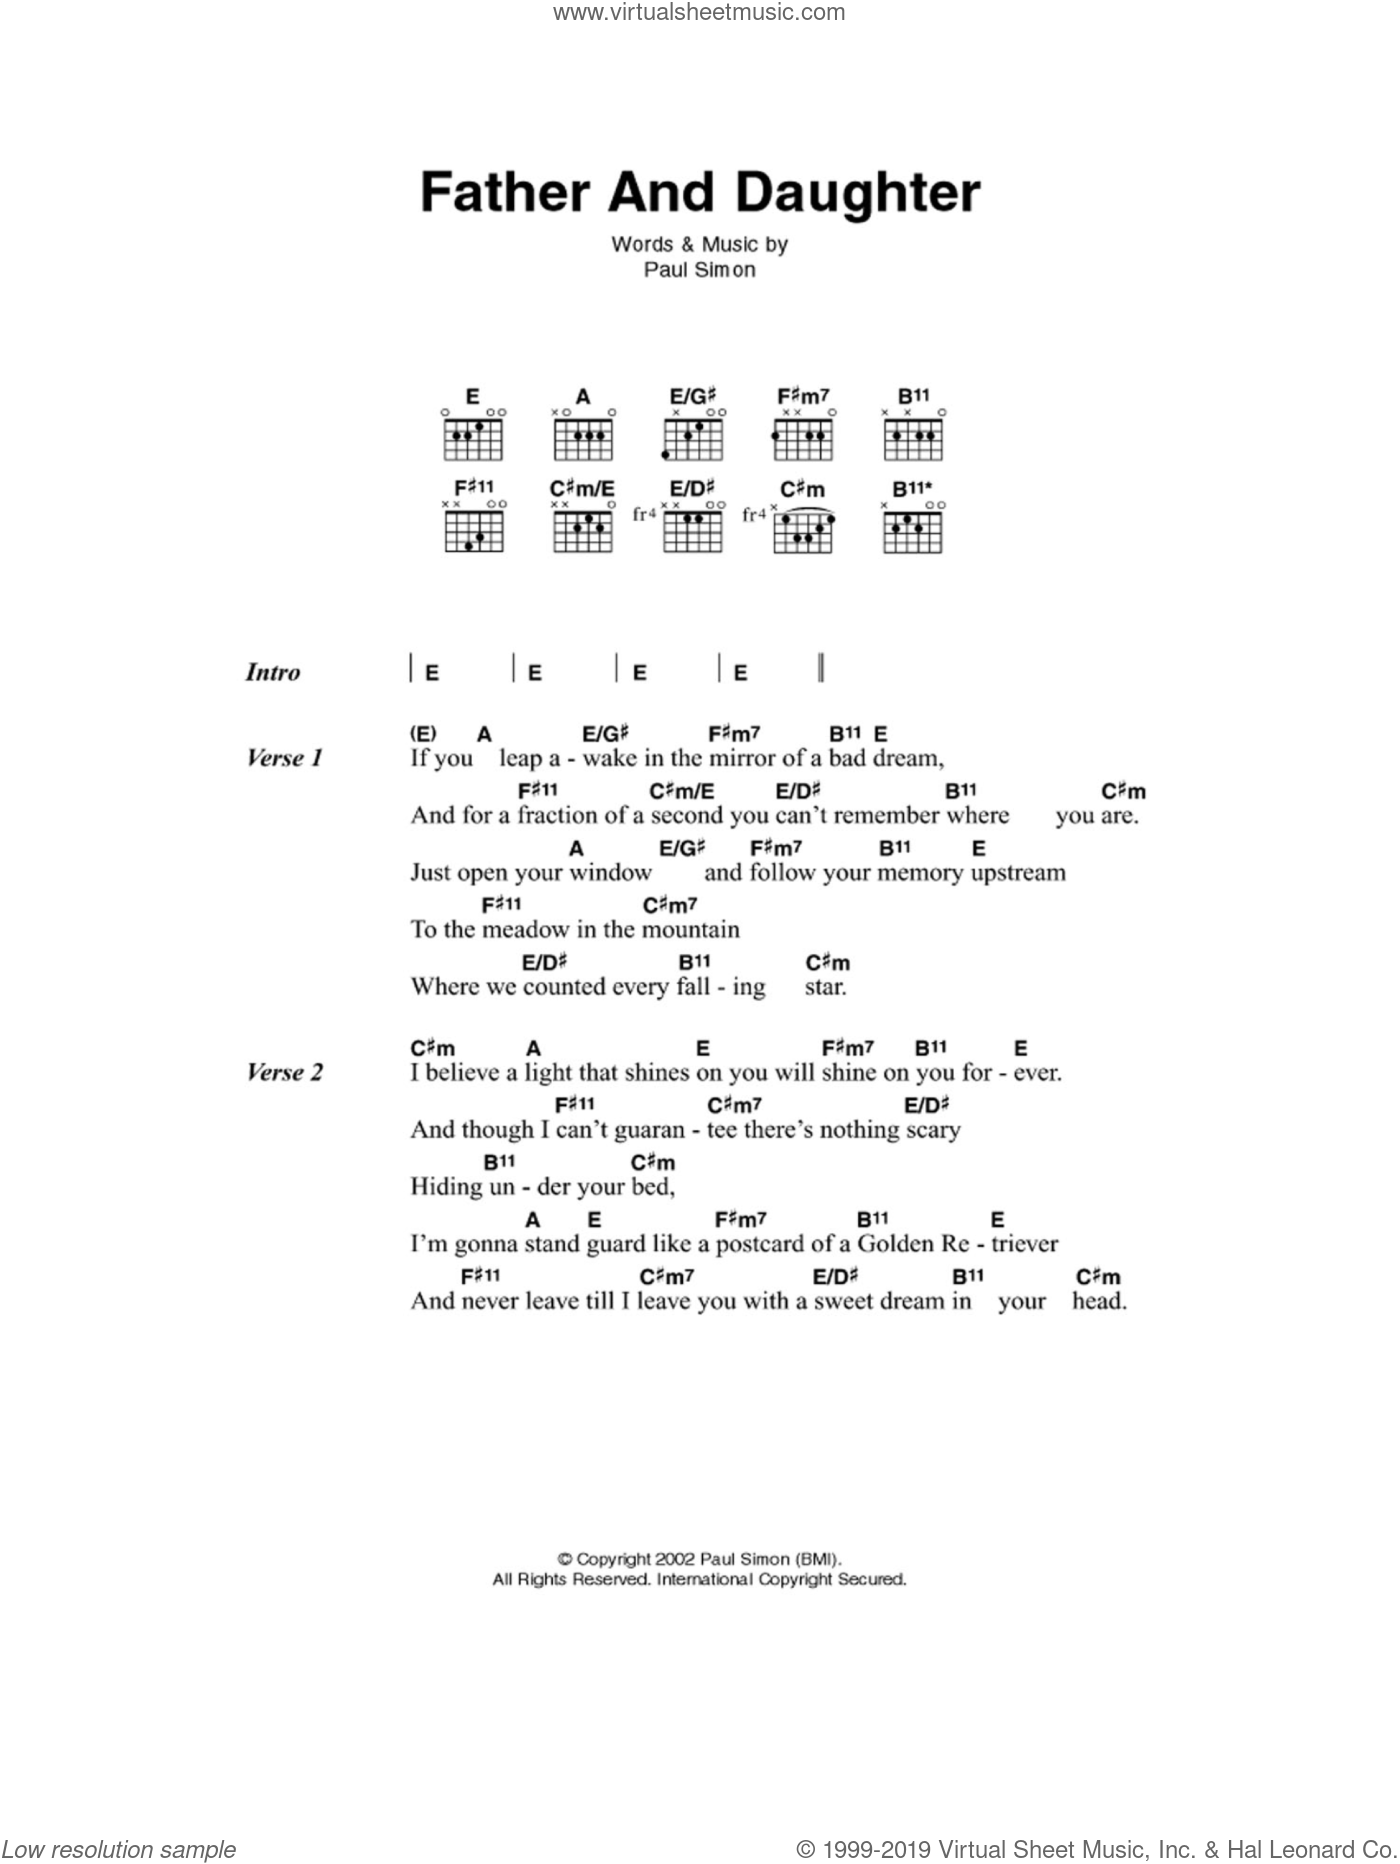 Simon - Father And Daughter sheet music for guitar (chords) [PDF]